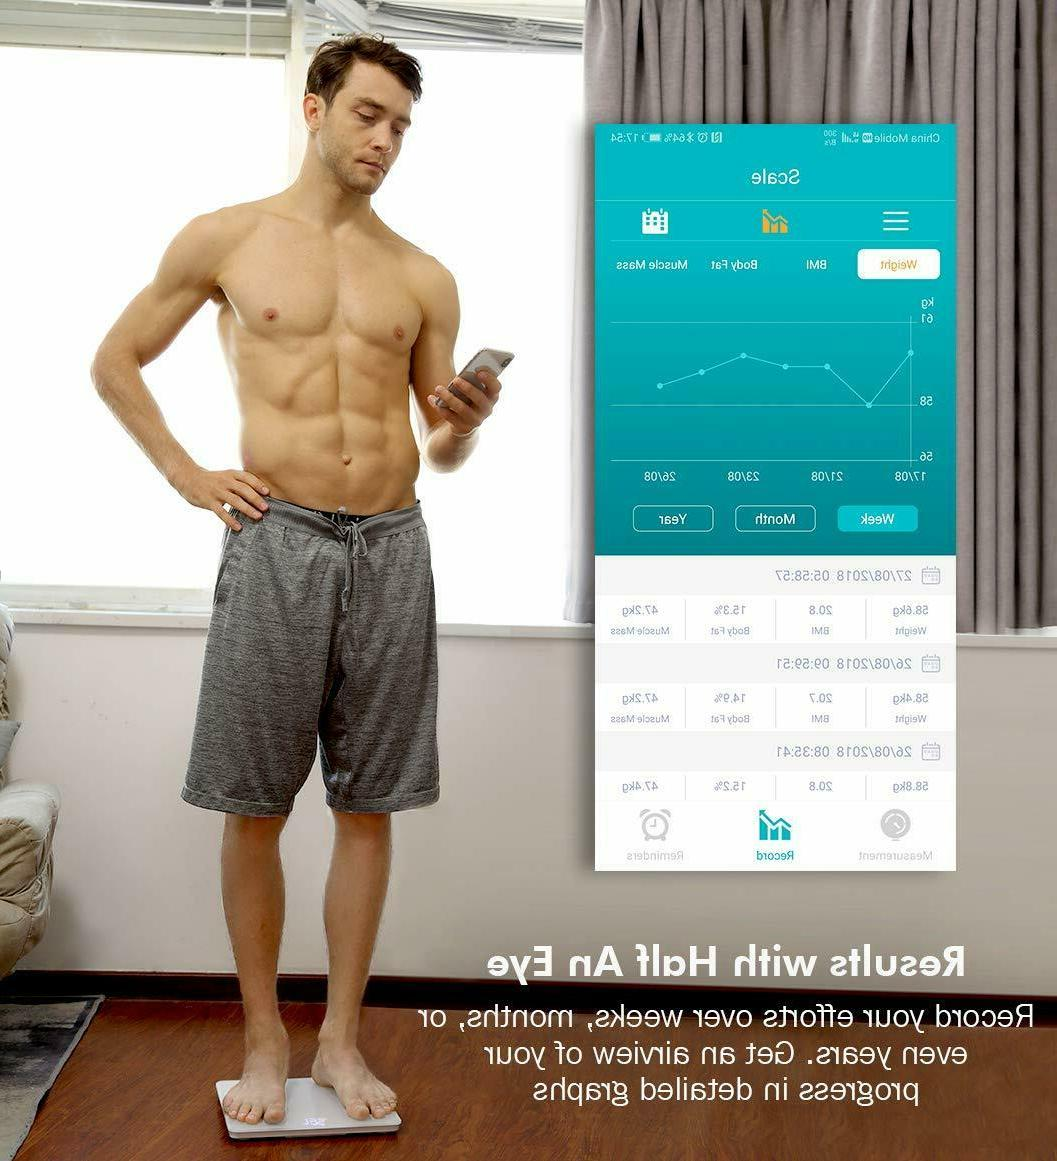 BMI and Body Weight Most Accurate NEW